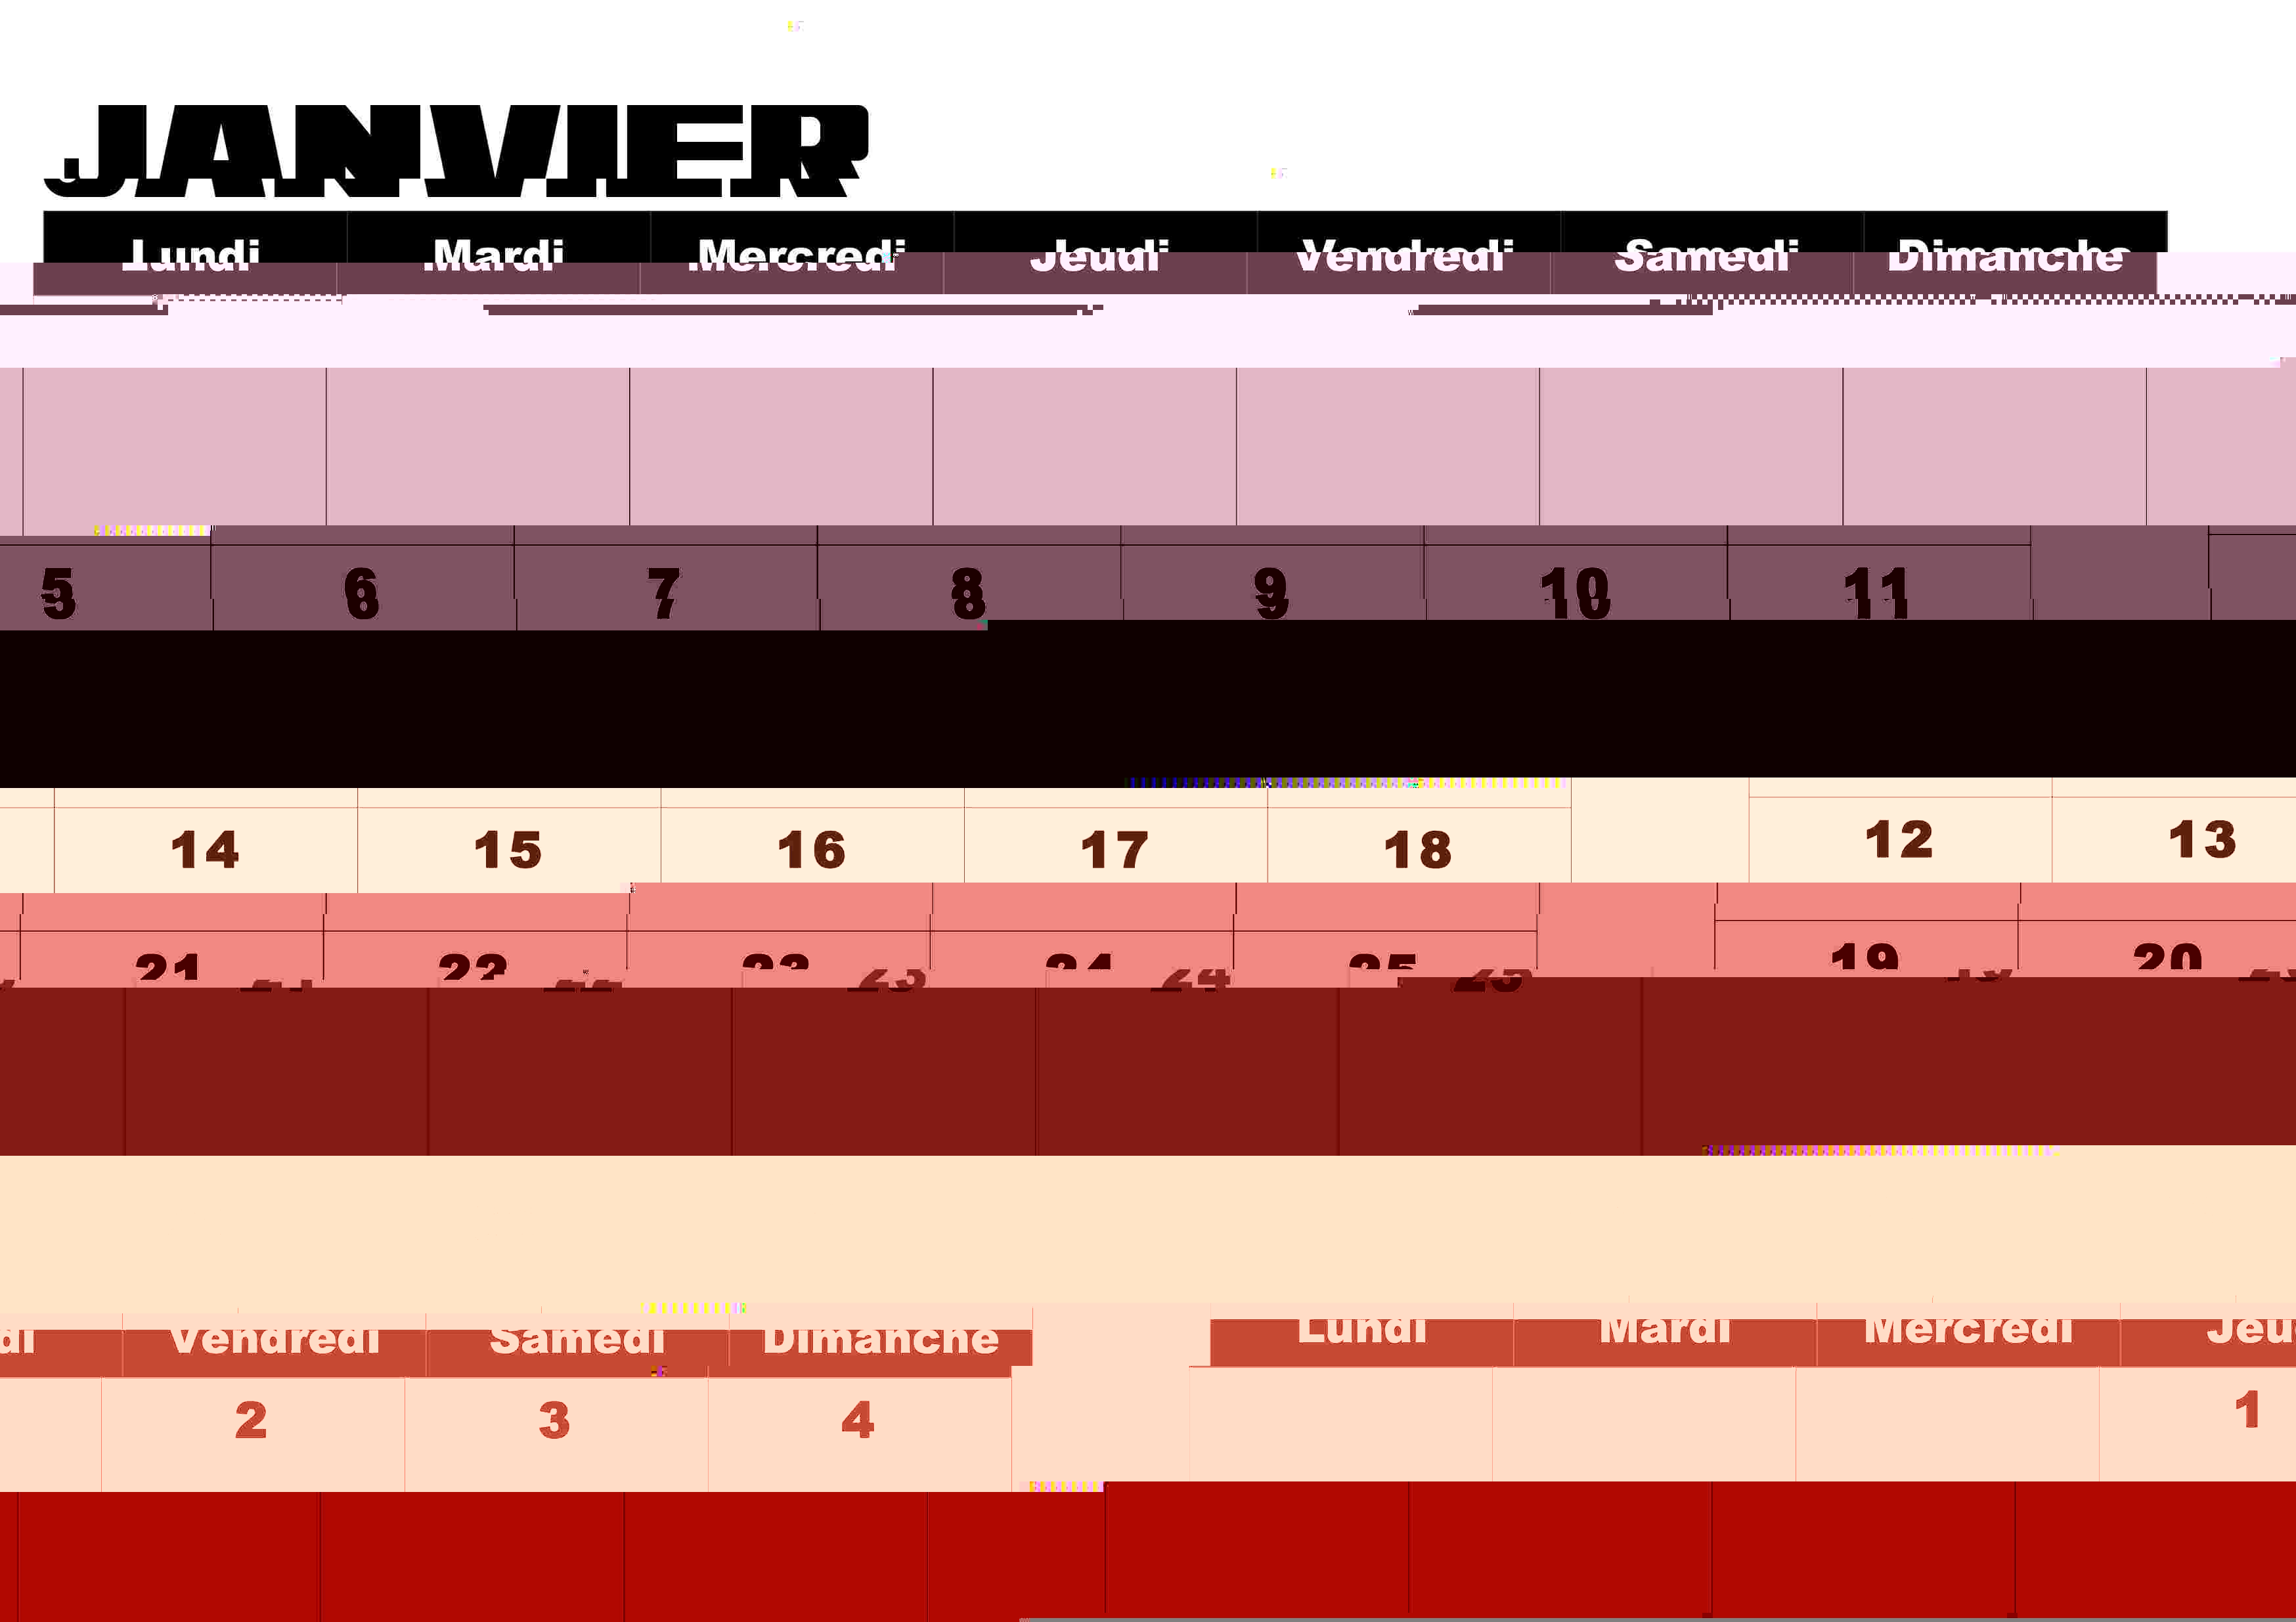 http://jkp.antisocial.be/Calendrier-2015/Janvier.png